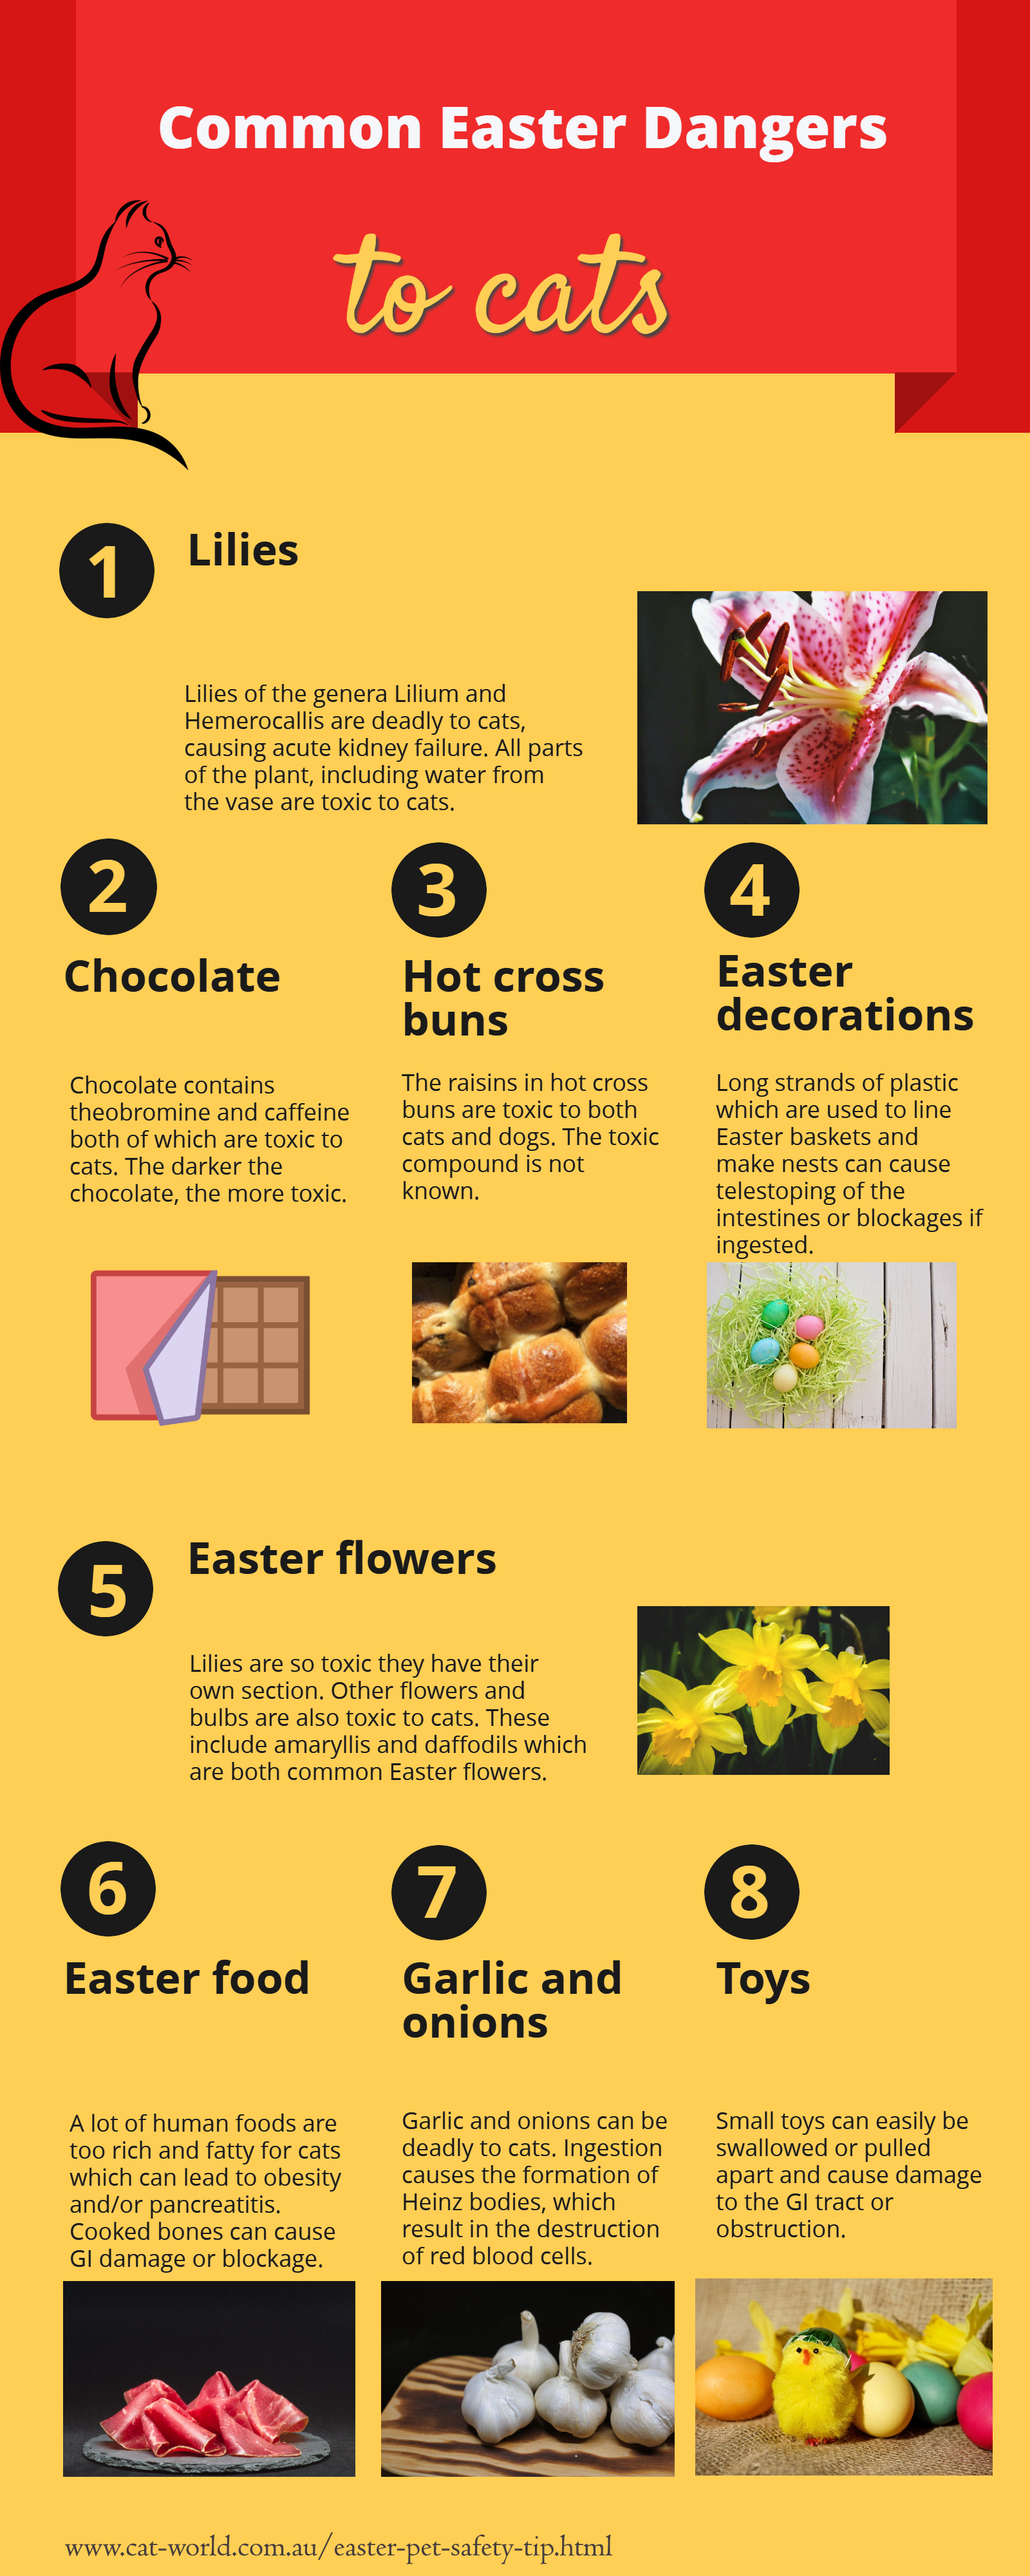 Easter safety for cats